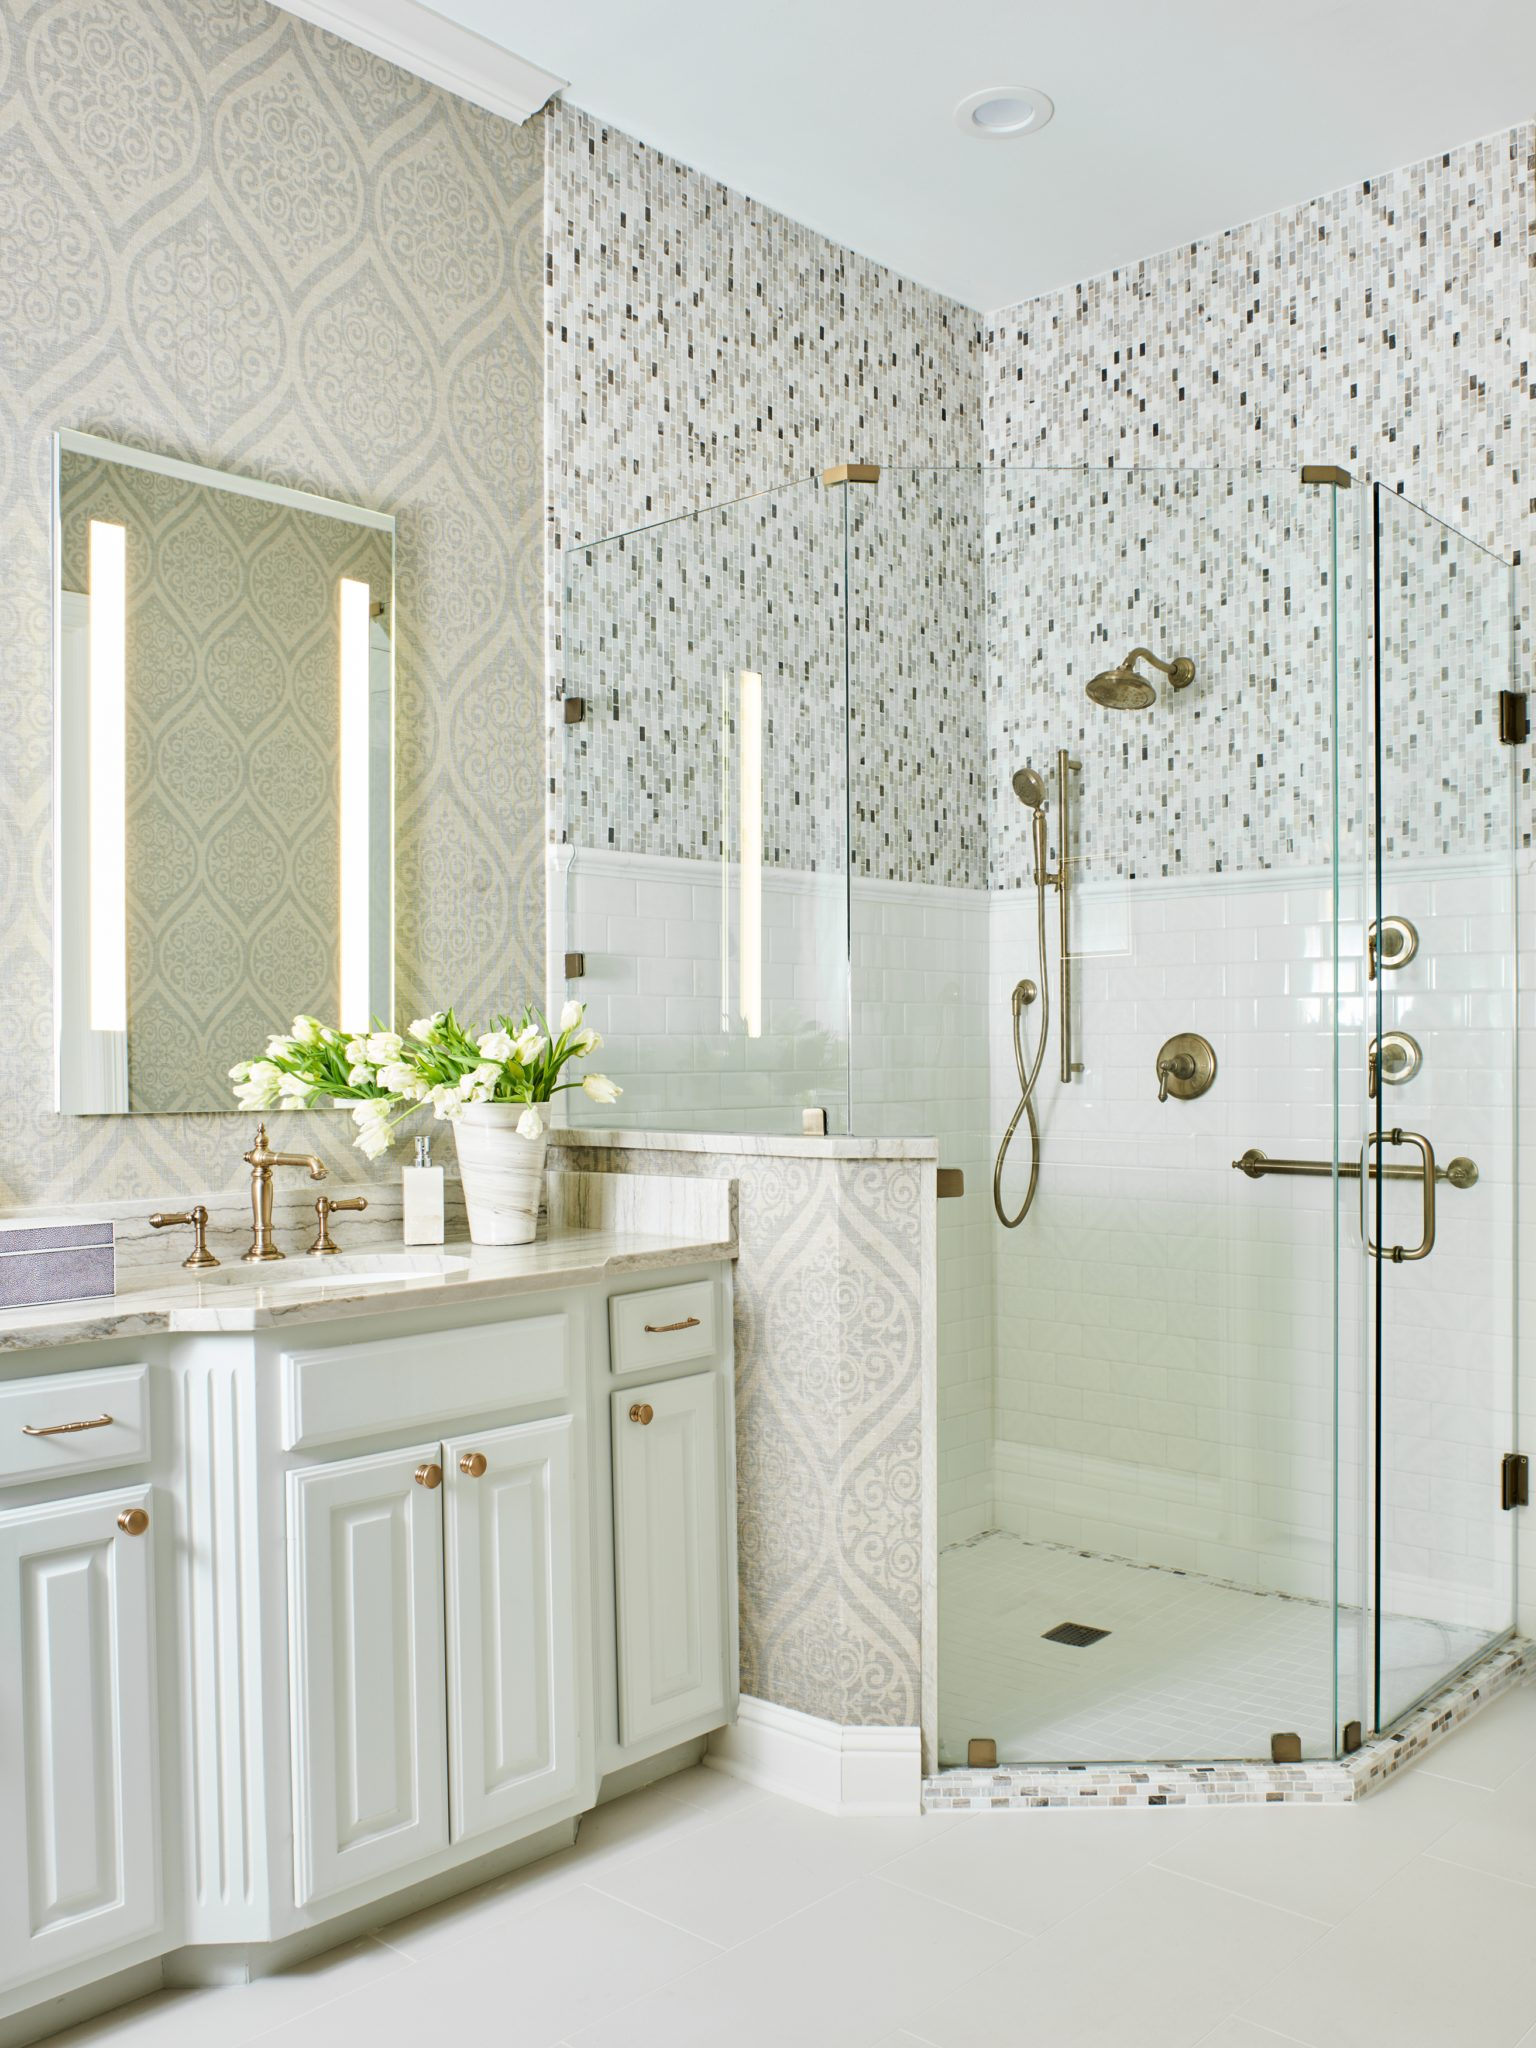 Master Bath Featuring Wallpaper & Tile by Denise McGaha Interiors